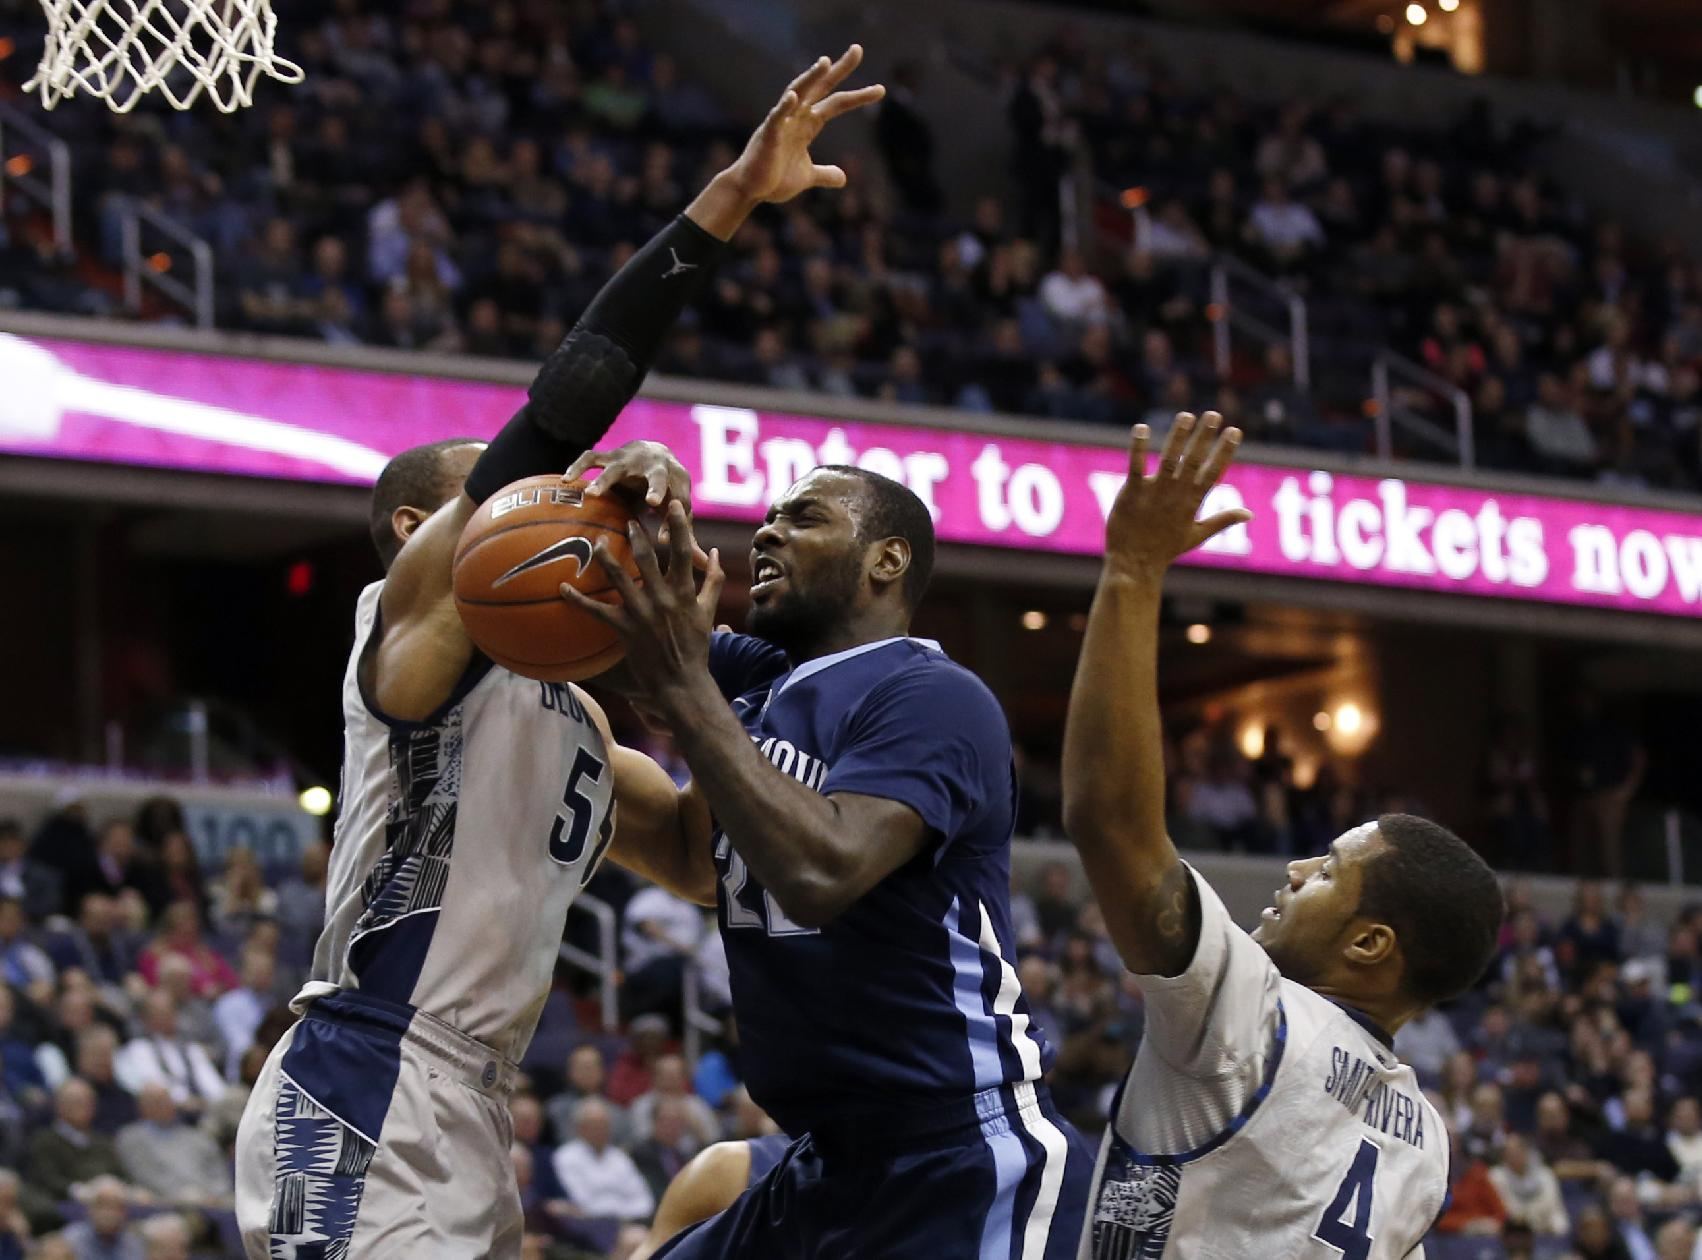 Villanova forward JayVaughn Pinkston (22) tries to shoot between Georgetown guards Jabril Trawick (55) and D'Vauntes Smith-Rivera (4) during the first half of an NCAA college basketball game, Monday, Jan. 27, 2014, in Washington